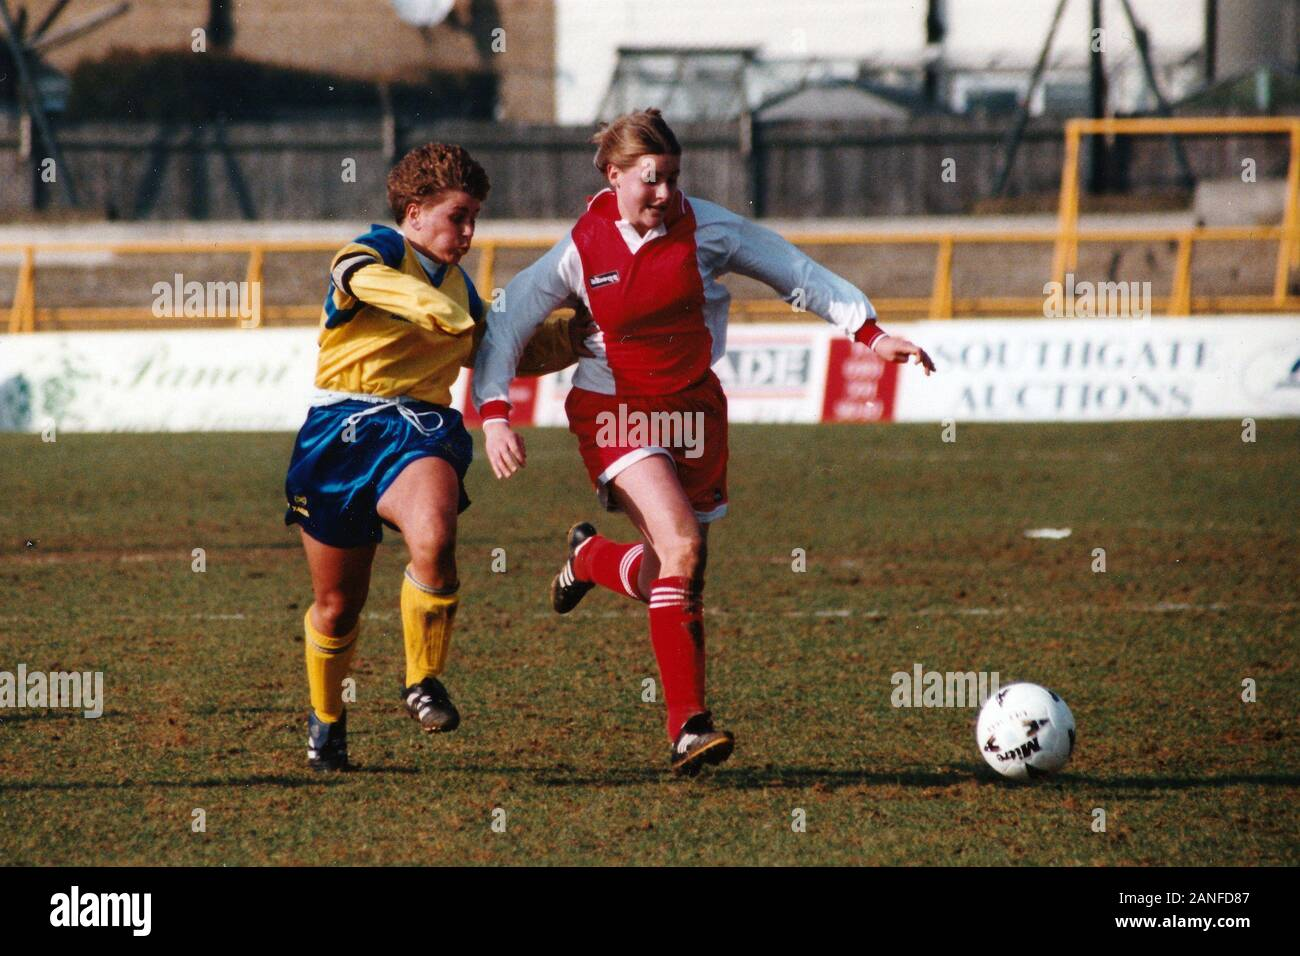 Kelly Smith of Wembley and Gillian Coulthard of Doncaster during Doncaster Belles vs Wembley Ladies, FA Women's Premier League Cup Final Football at U Stock Photo